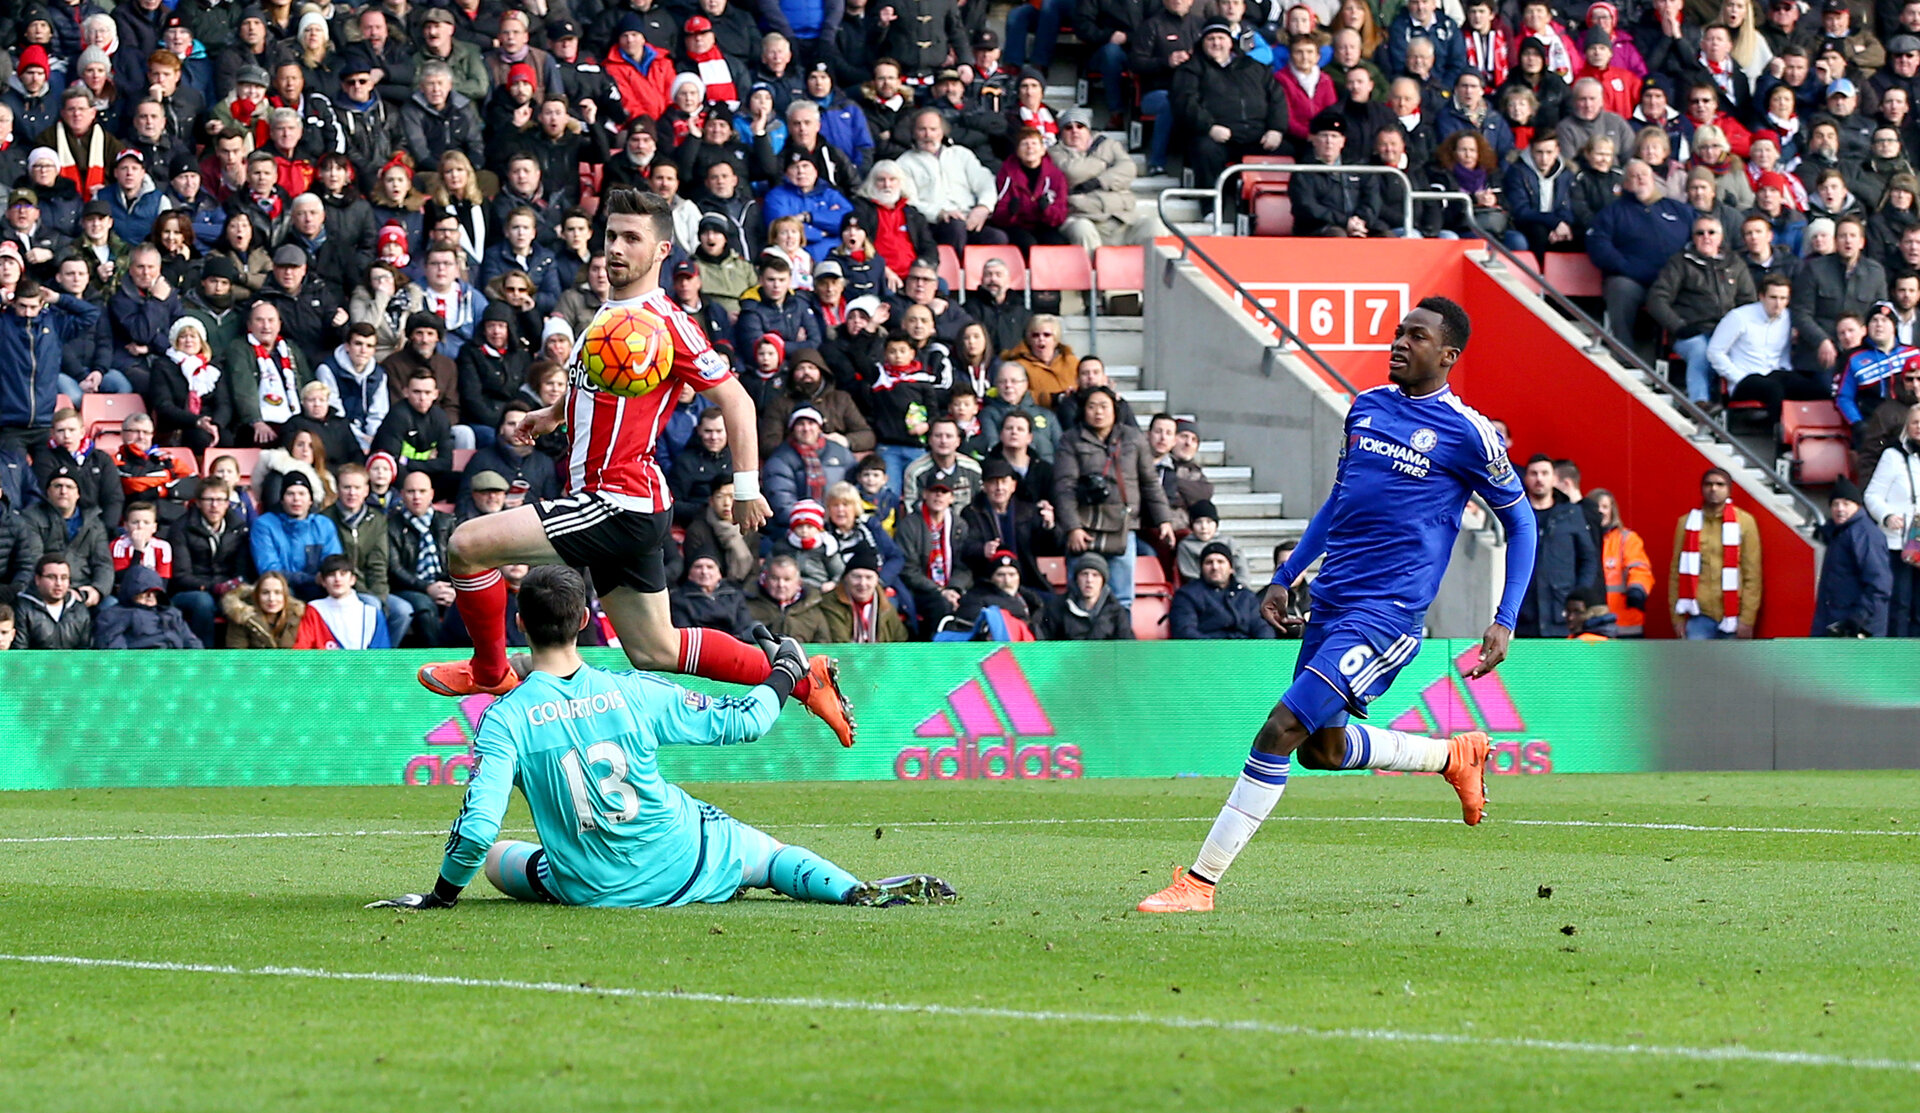 Shane Long scores during the Barclays Premier League match between Southampton and Chelsea at St Mary's Stadium, Southampton, England on 27 February 2016.